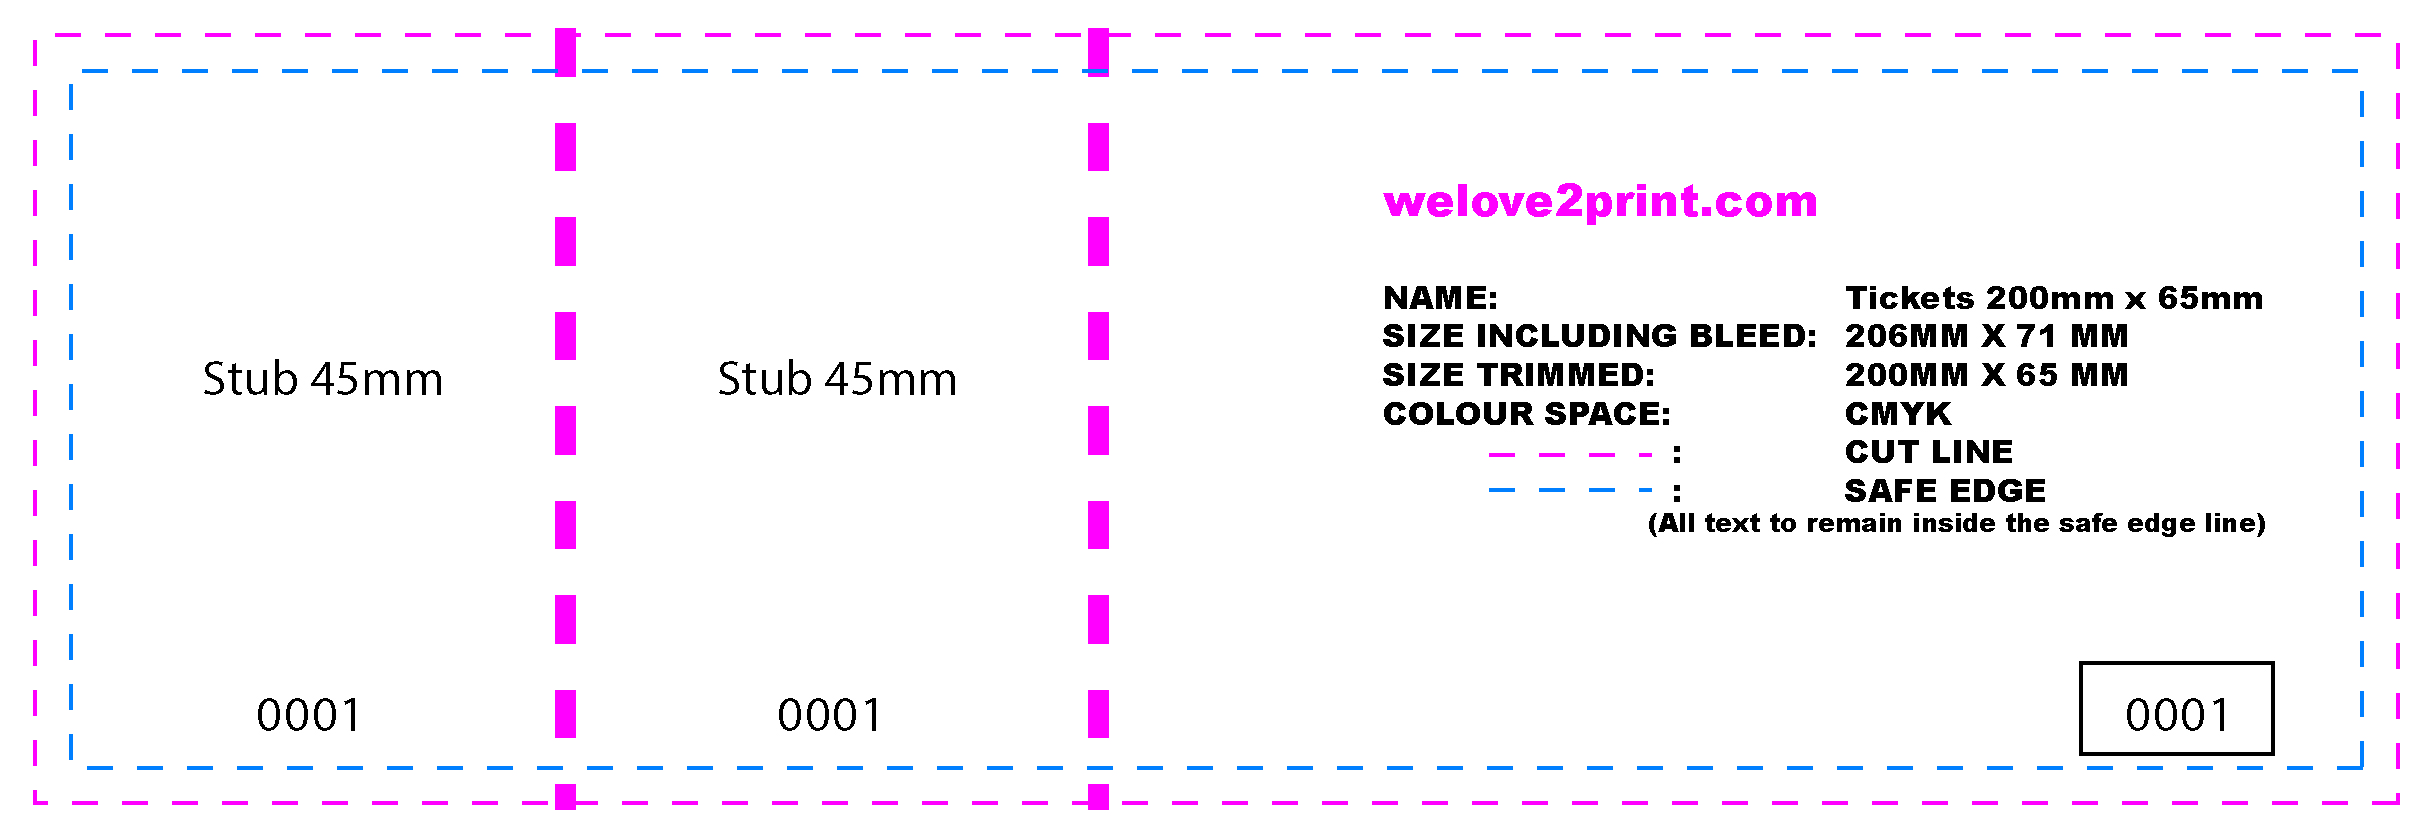 double sided ticket printing weloveprint details